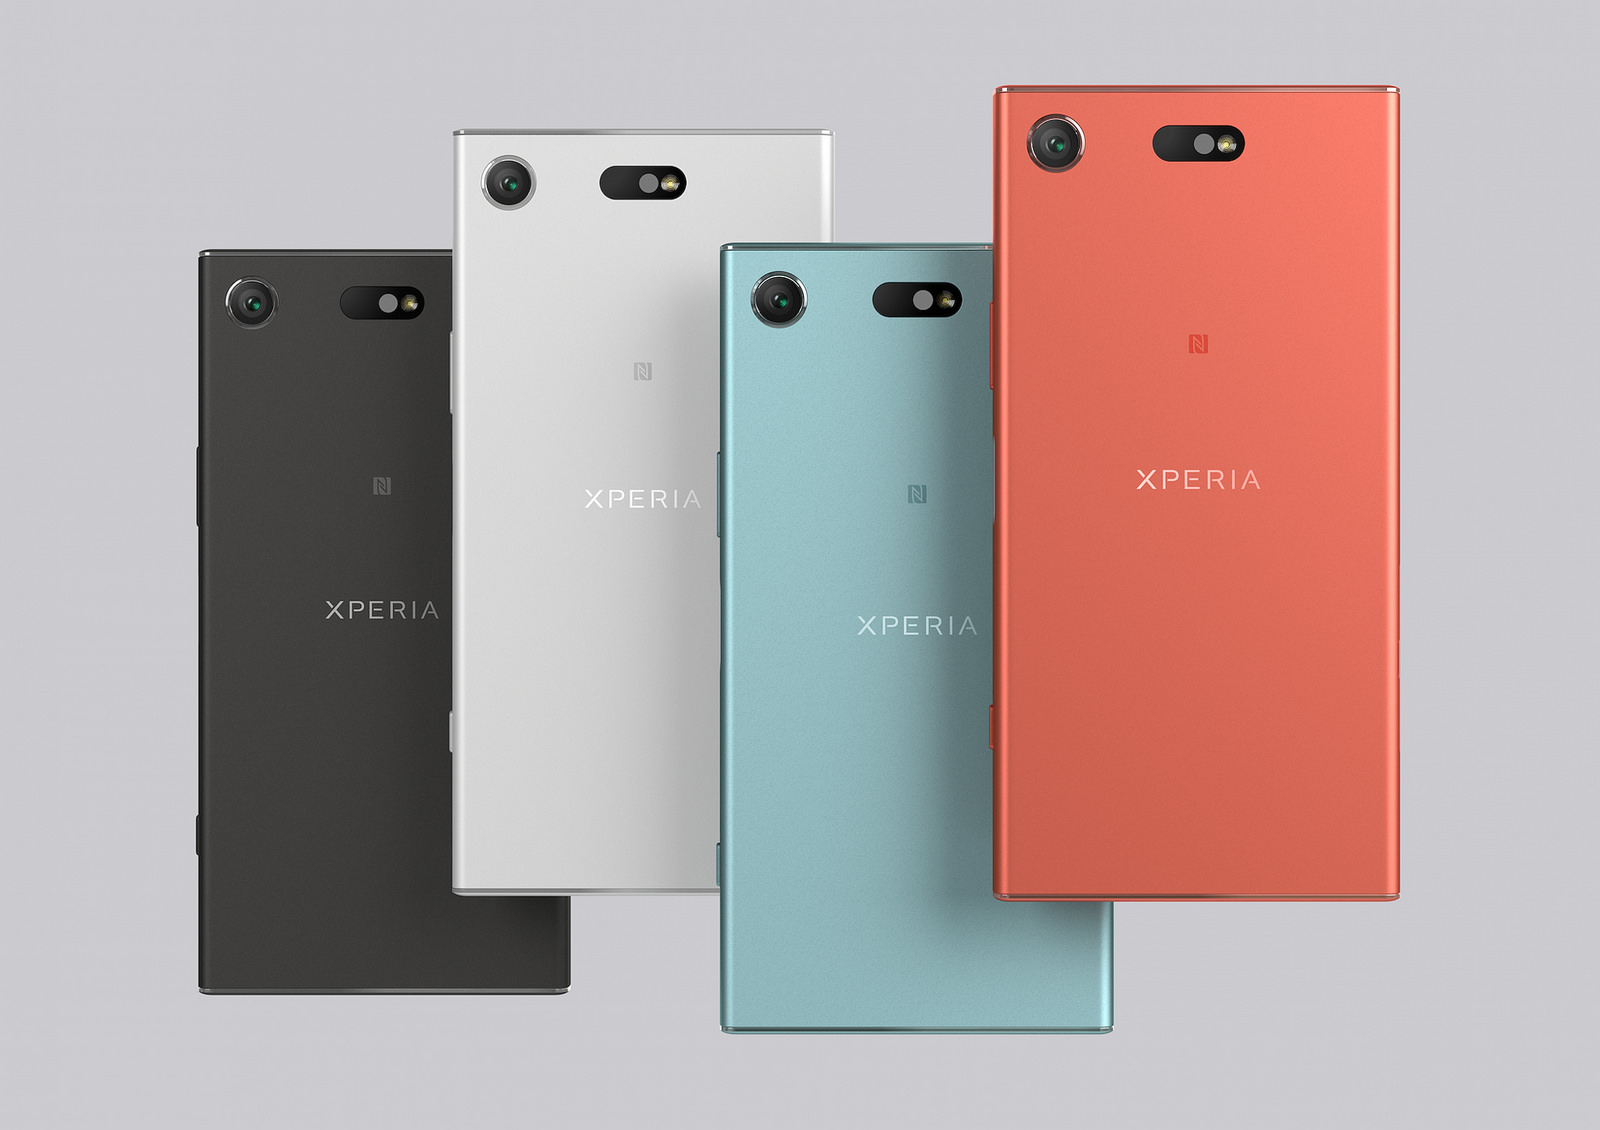 Android Oreo starts rolling out to the Xperia XZ Premium